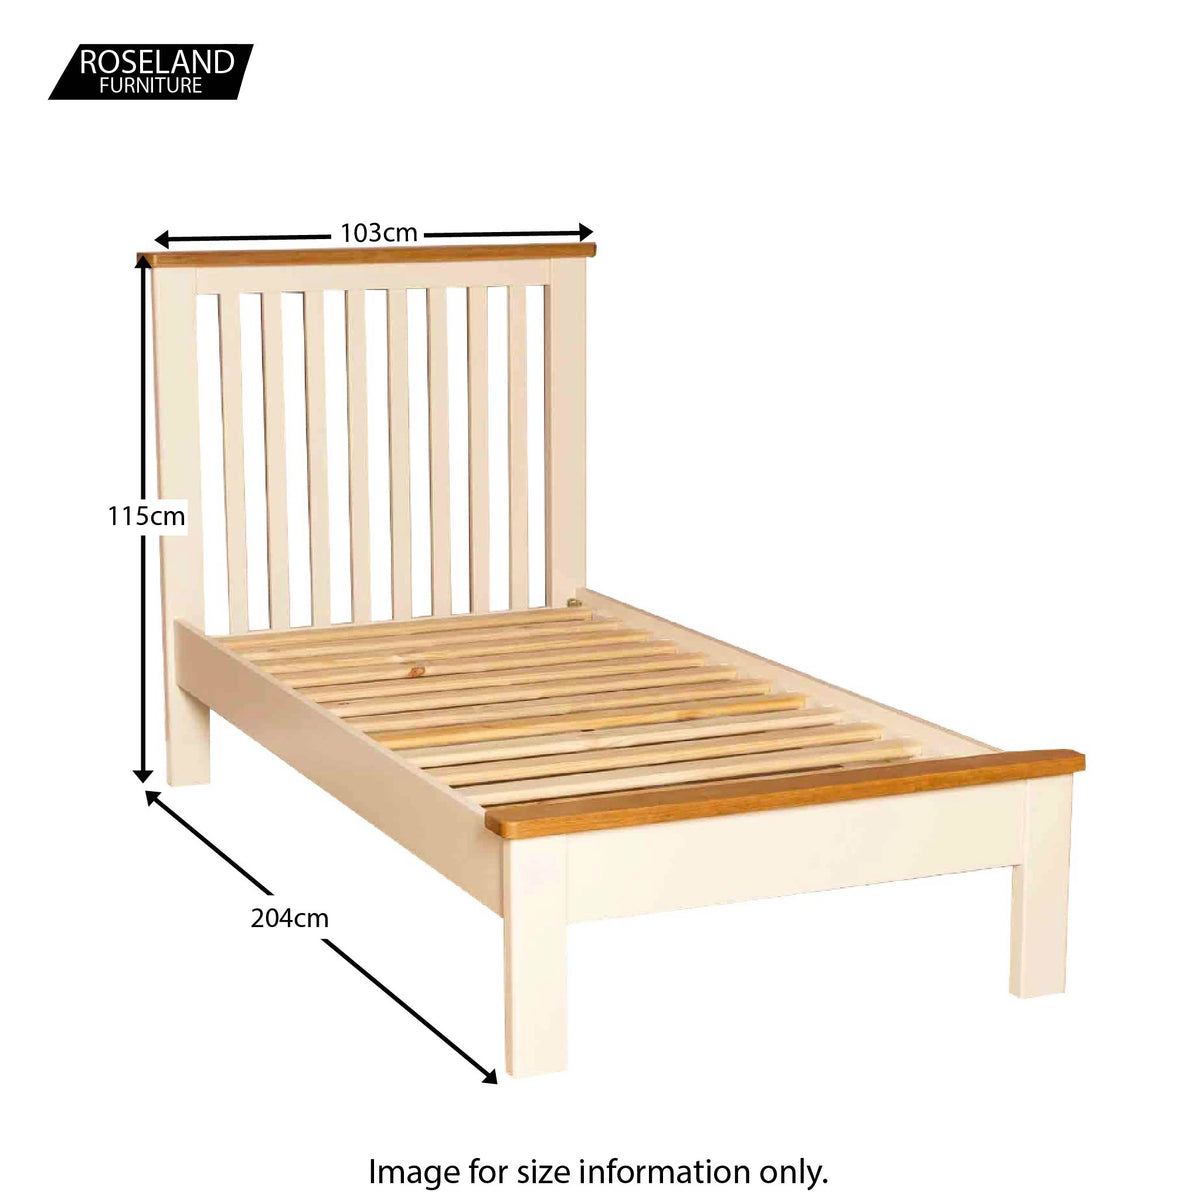 Padstow Cream 3' Single Bed Frame - Size Guide